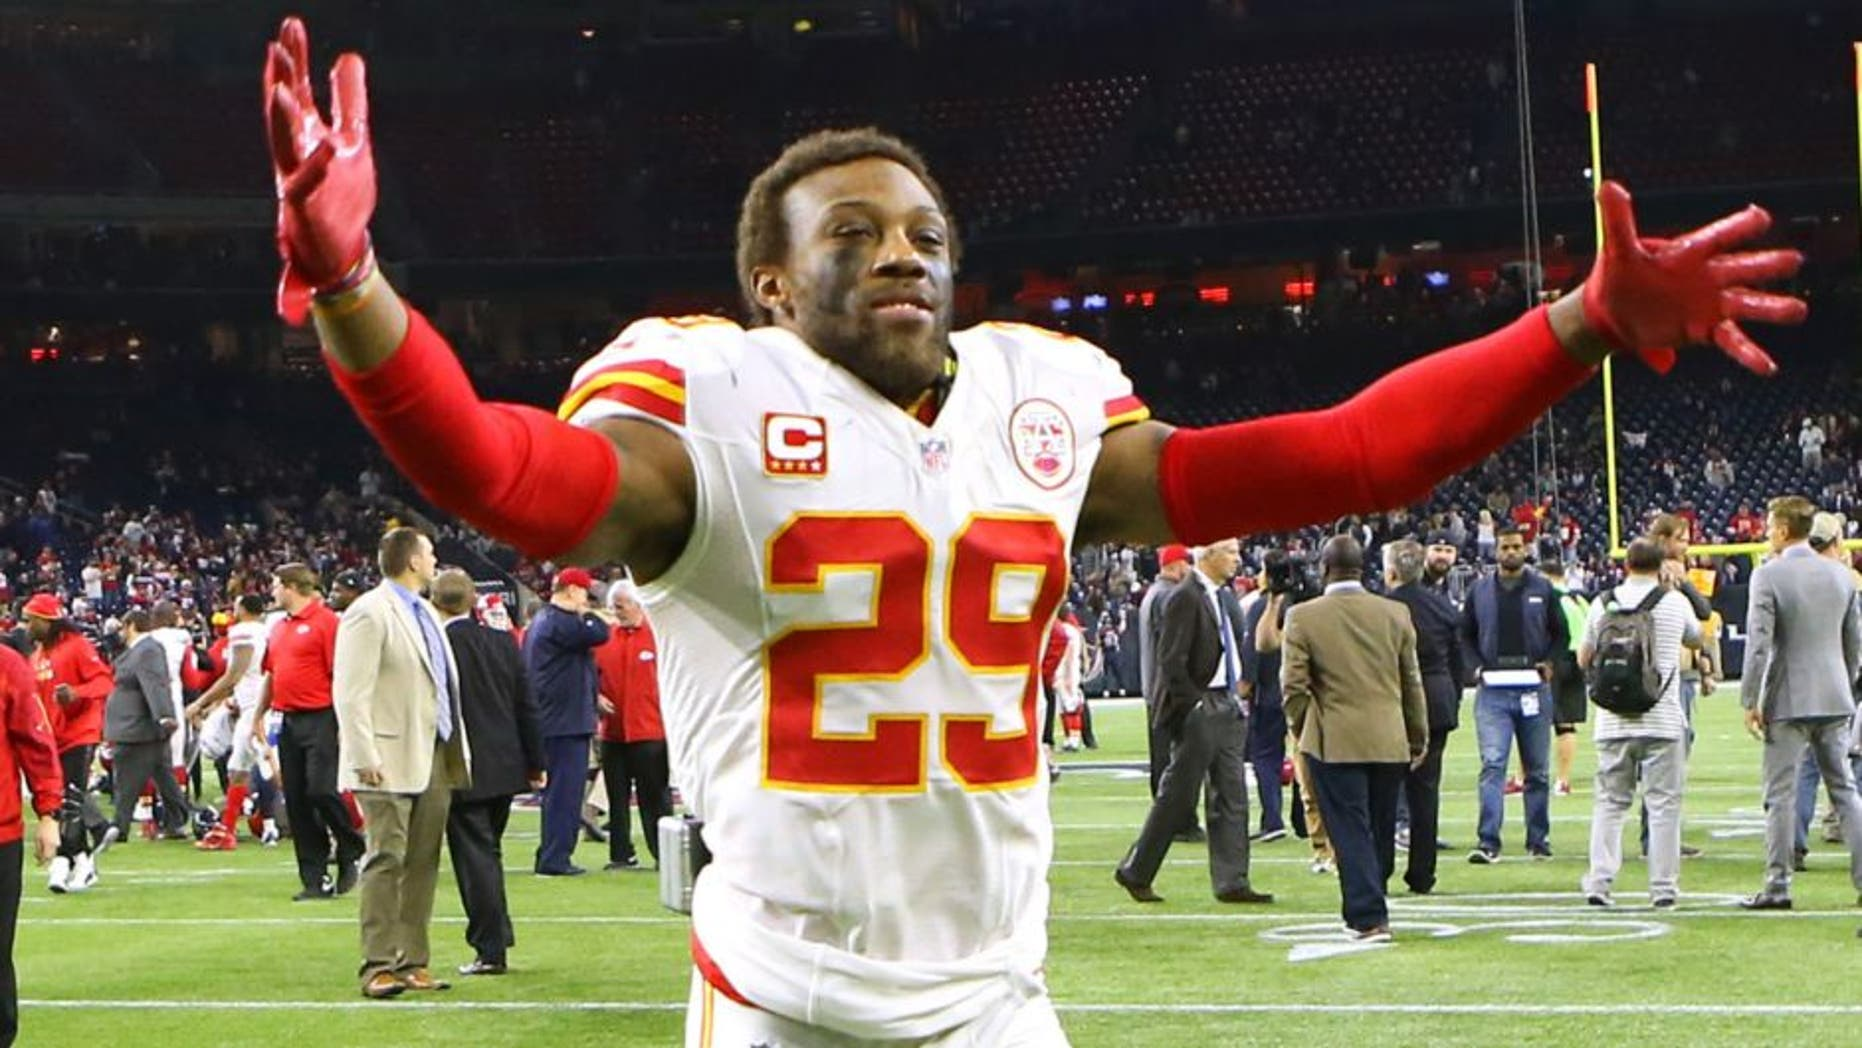 Jan 9, 2016; Houston, TX, USA; Kansas City Chiefs free safety Eric Berry (29) celebrates after defeating the Houston Texans in a AFC Wild Card playoff football game at NRG Stadium. Kansas City won 30-0. Mandatory Credit: Troy Taormina-USA TODAY Sports